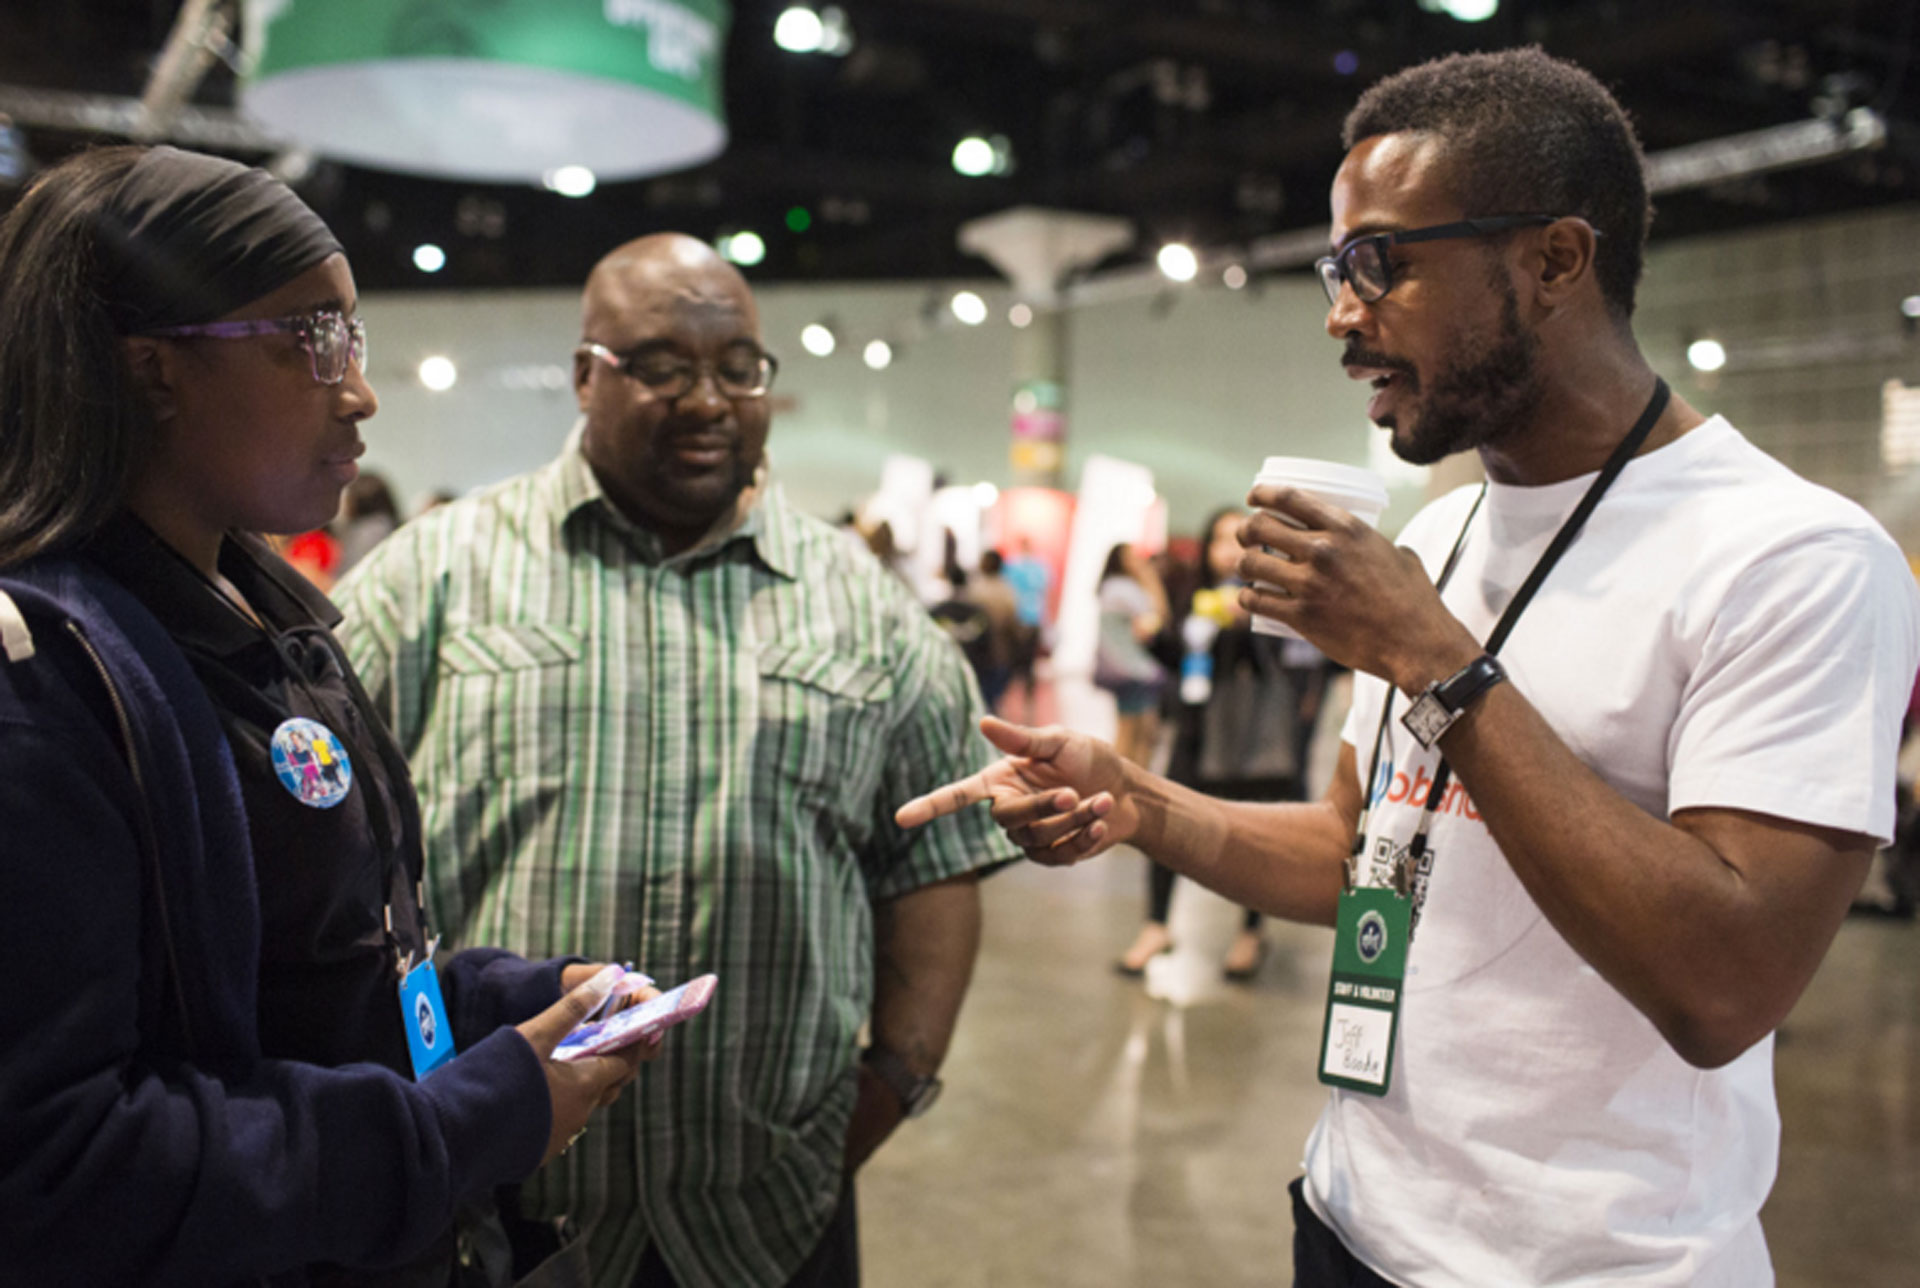 Jeff Boodie (R), founder and CEO of JobSnap, explains his app to 16-year-old Kamiya Williams during the Los Angeles Opportunity Hiring Fair at the L.A. Convention Center on Feb. 11, 2016.